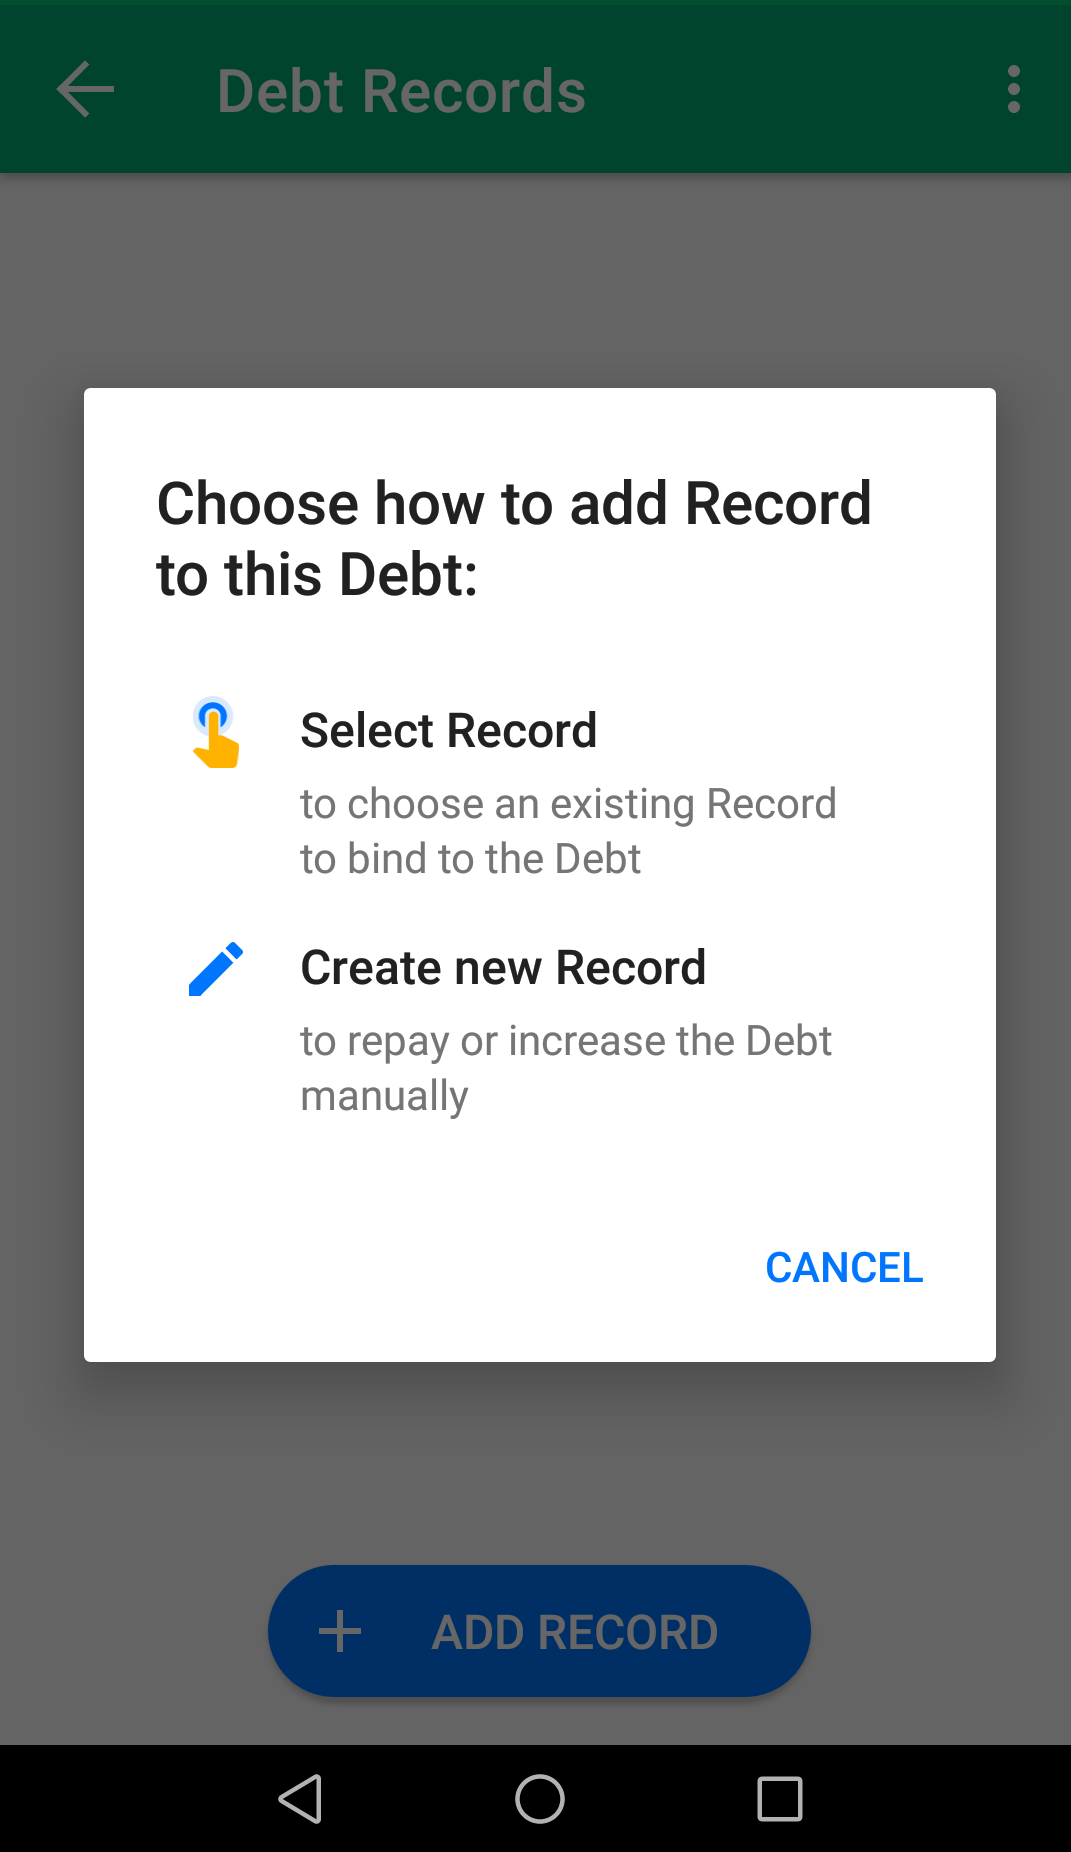 Choose_how_to_create_a_debt_record__manual_vs_existing_.png